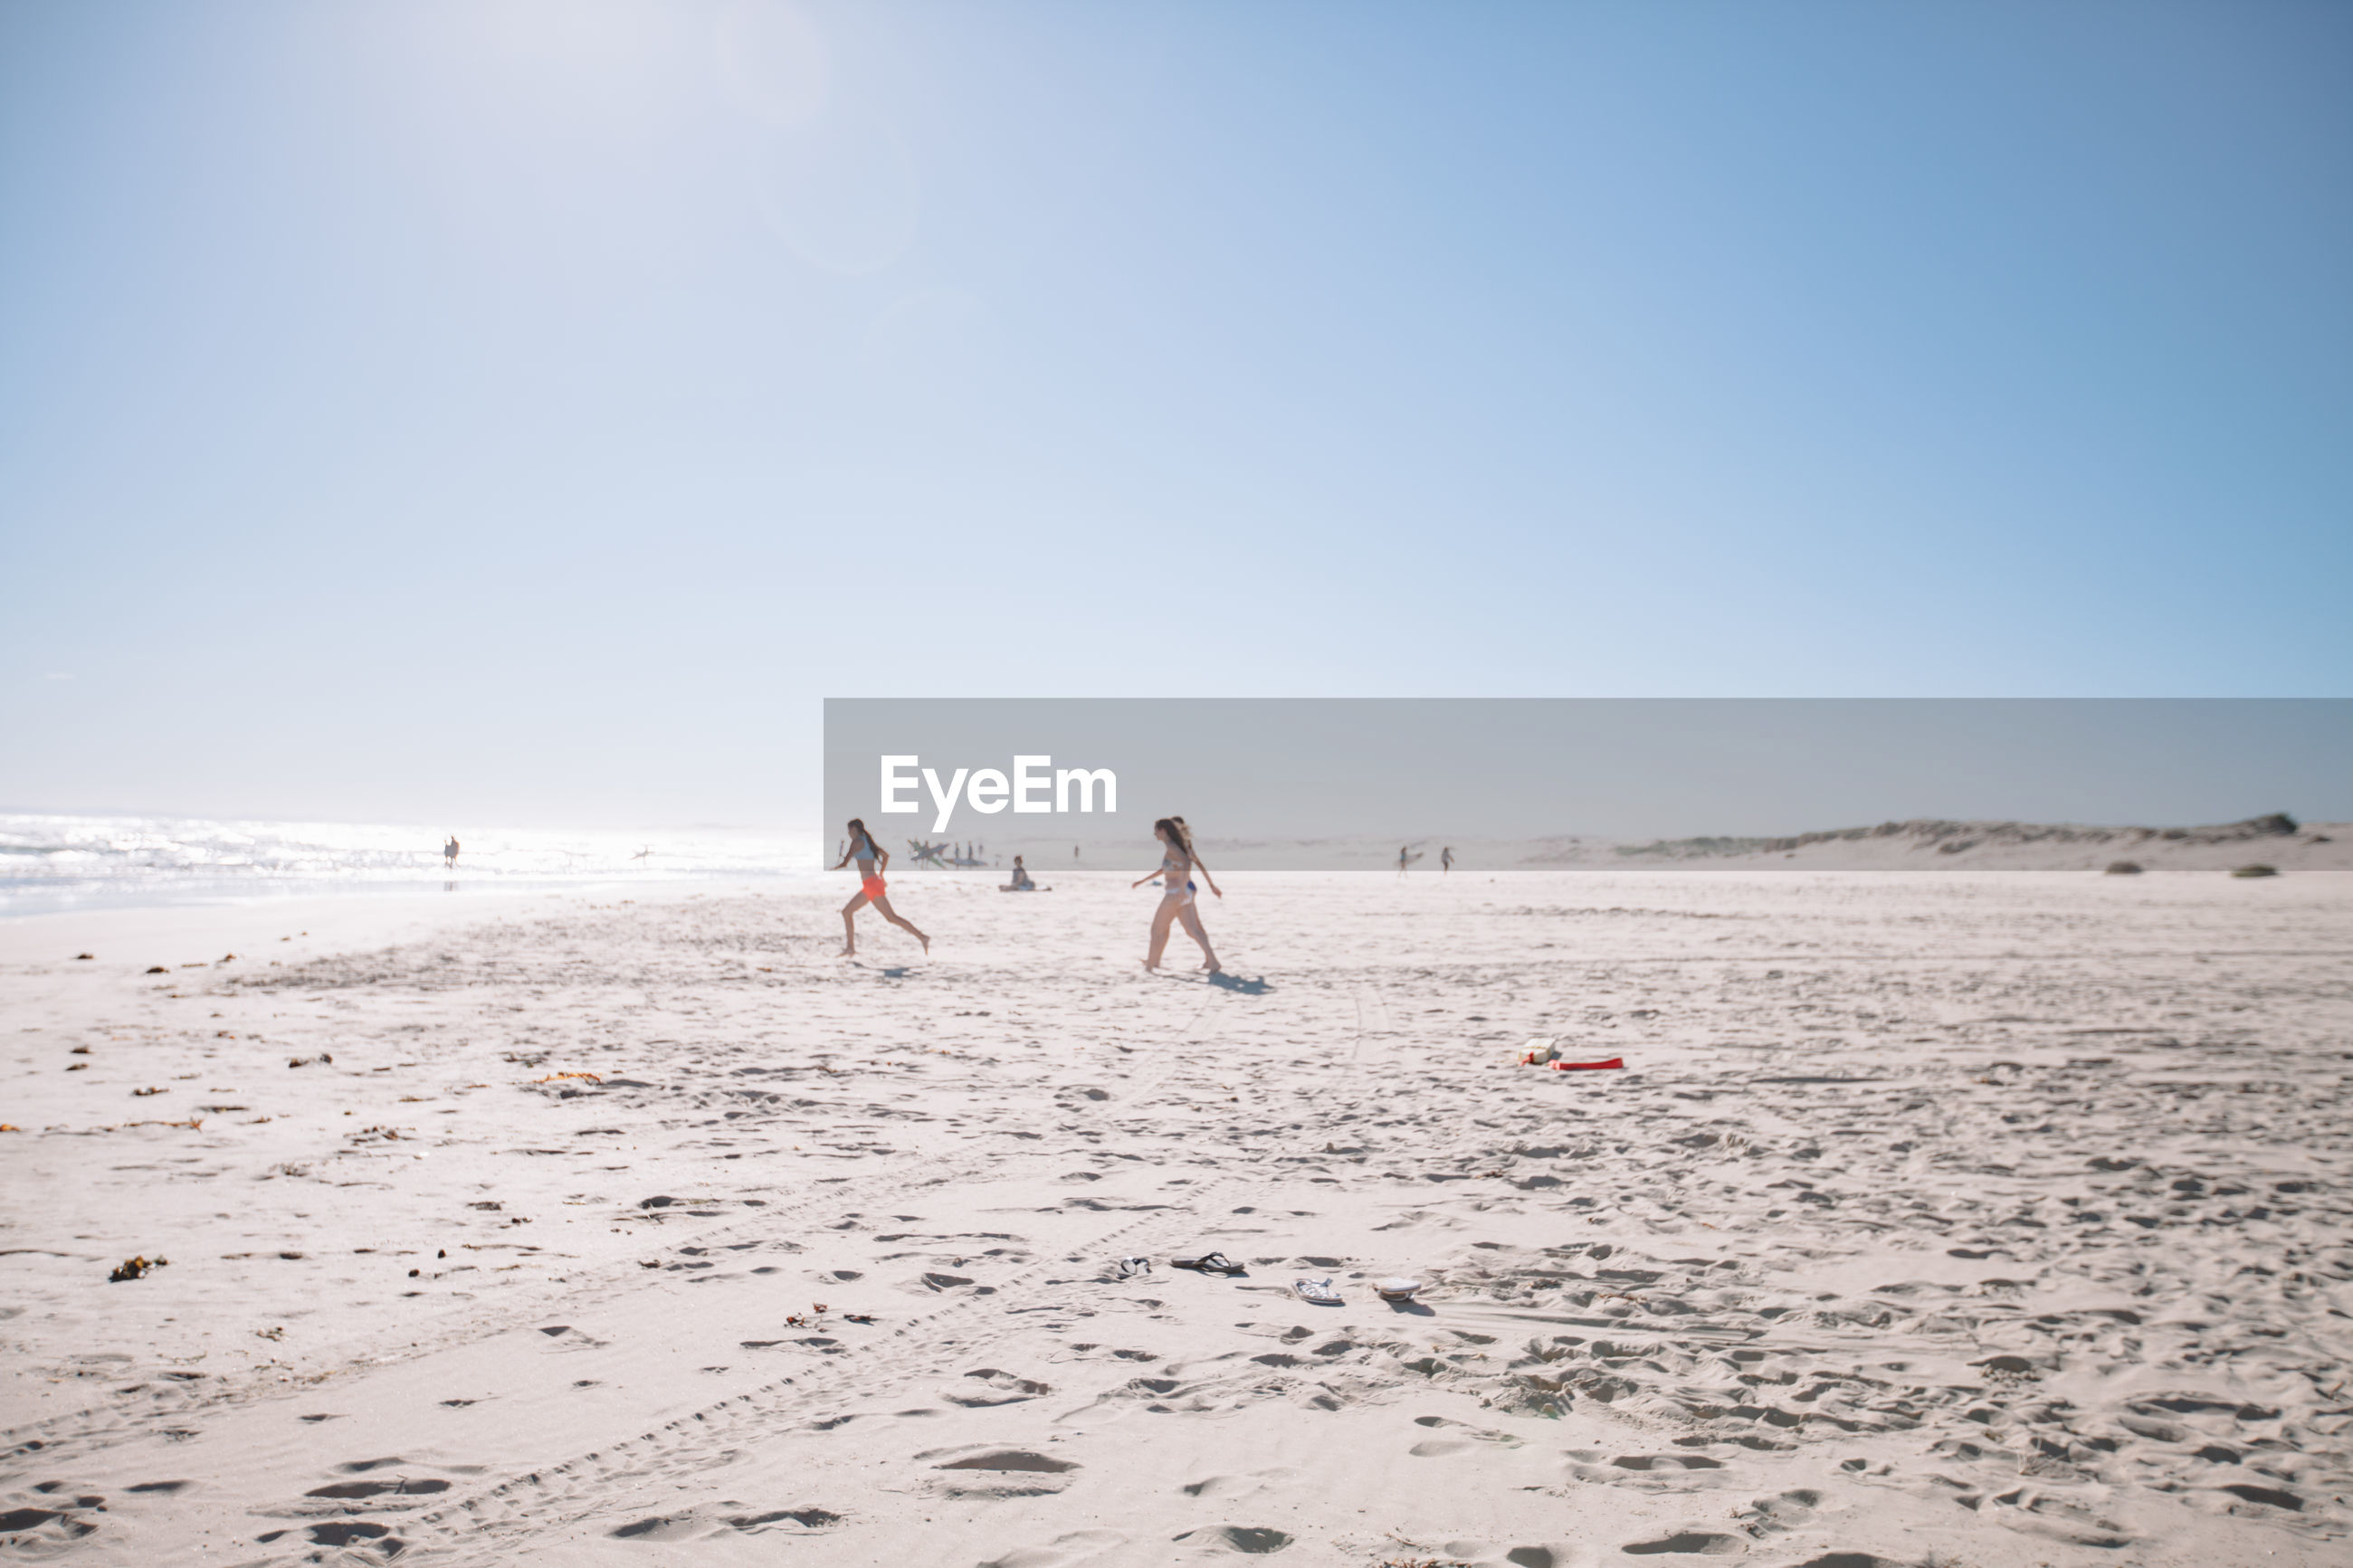 PEOPLE PLAYING ON BEACH AGAINST SKY